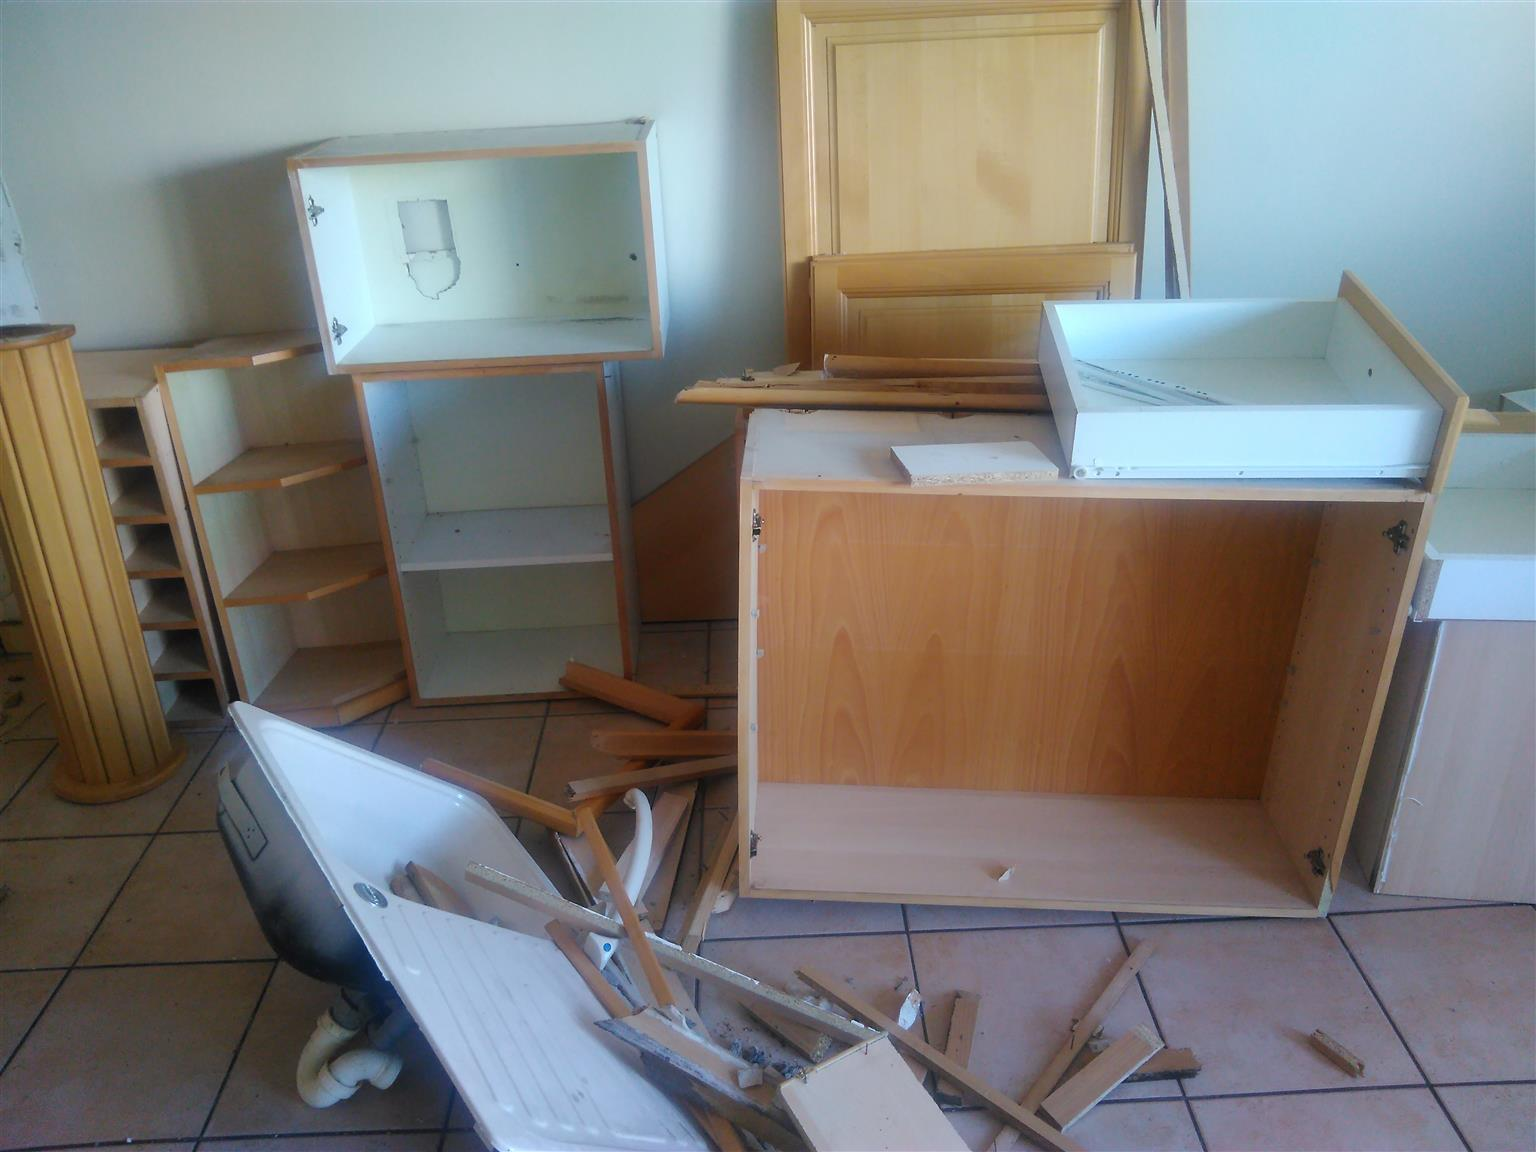 2nd hand kitchen cupboards for sale